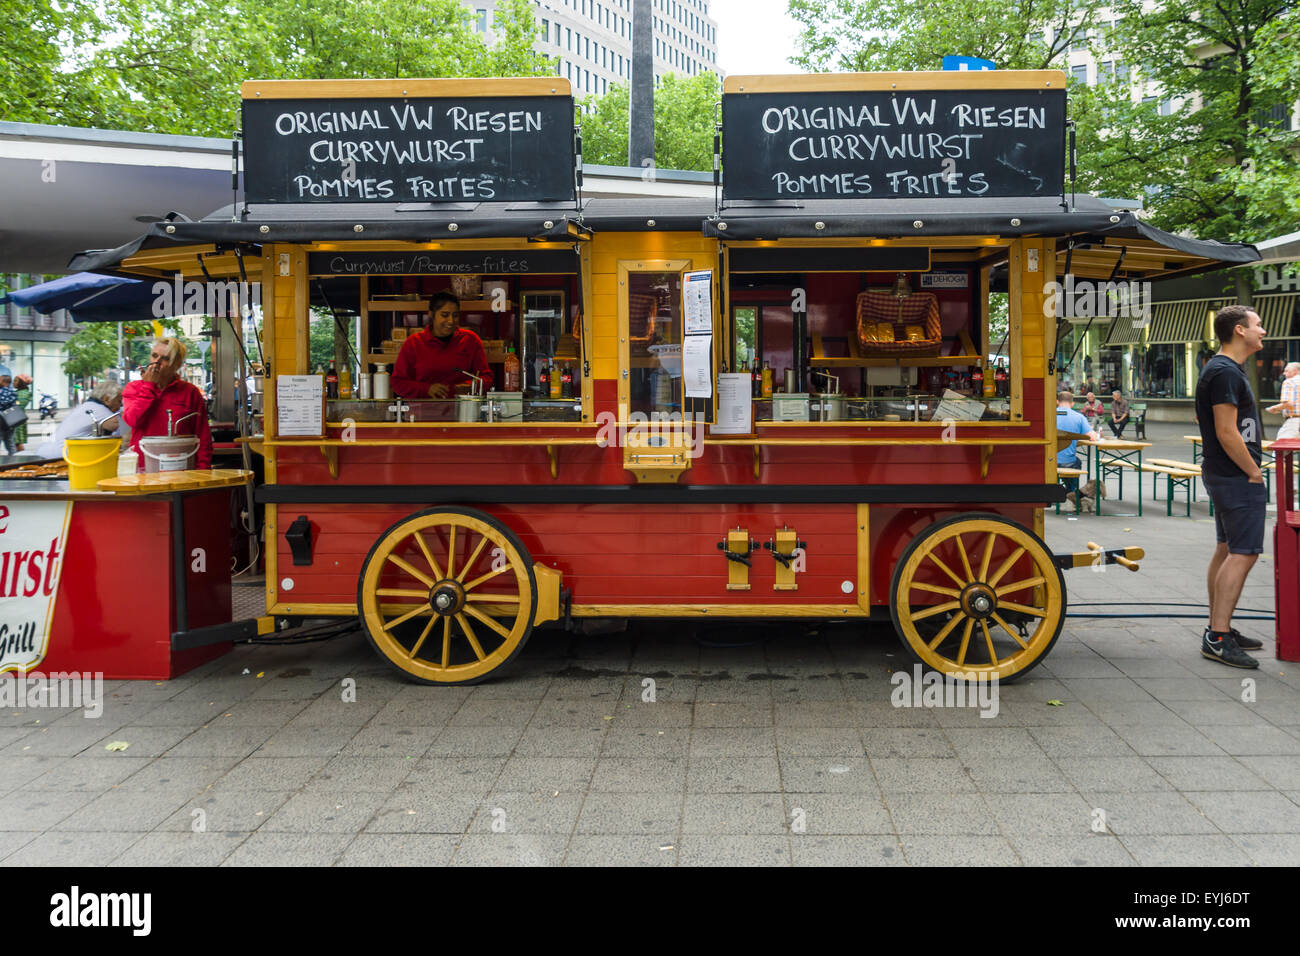 BERLIN - JUNE 14, 2015: Mobile cafes in the form of old wagon on the famous shopping street of West Berlin - Kurfuerstendamm. Stock Photo